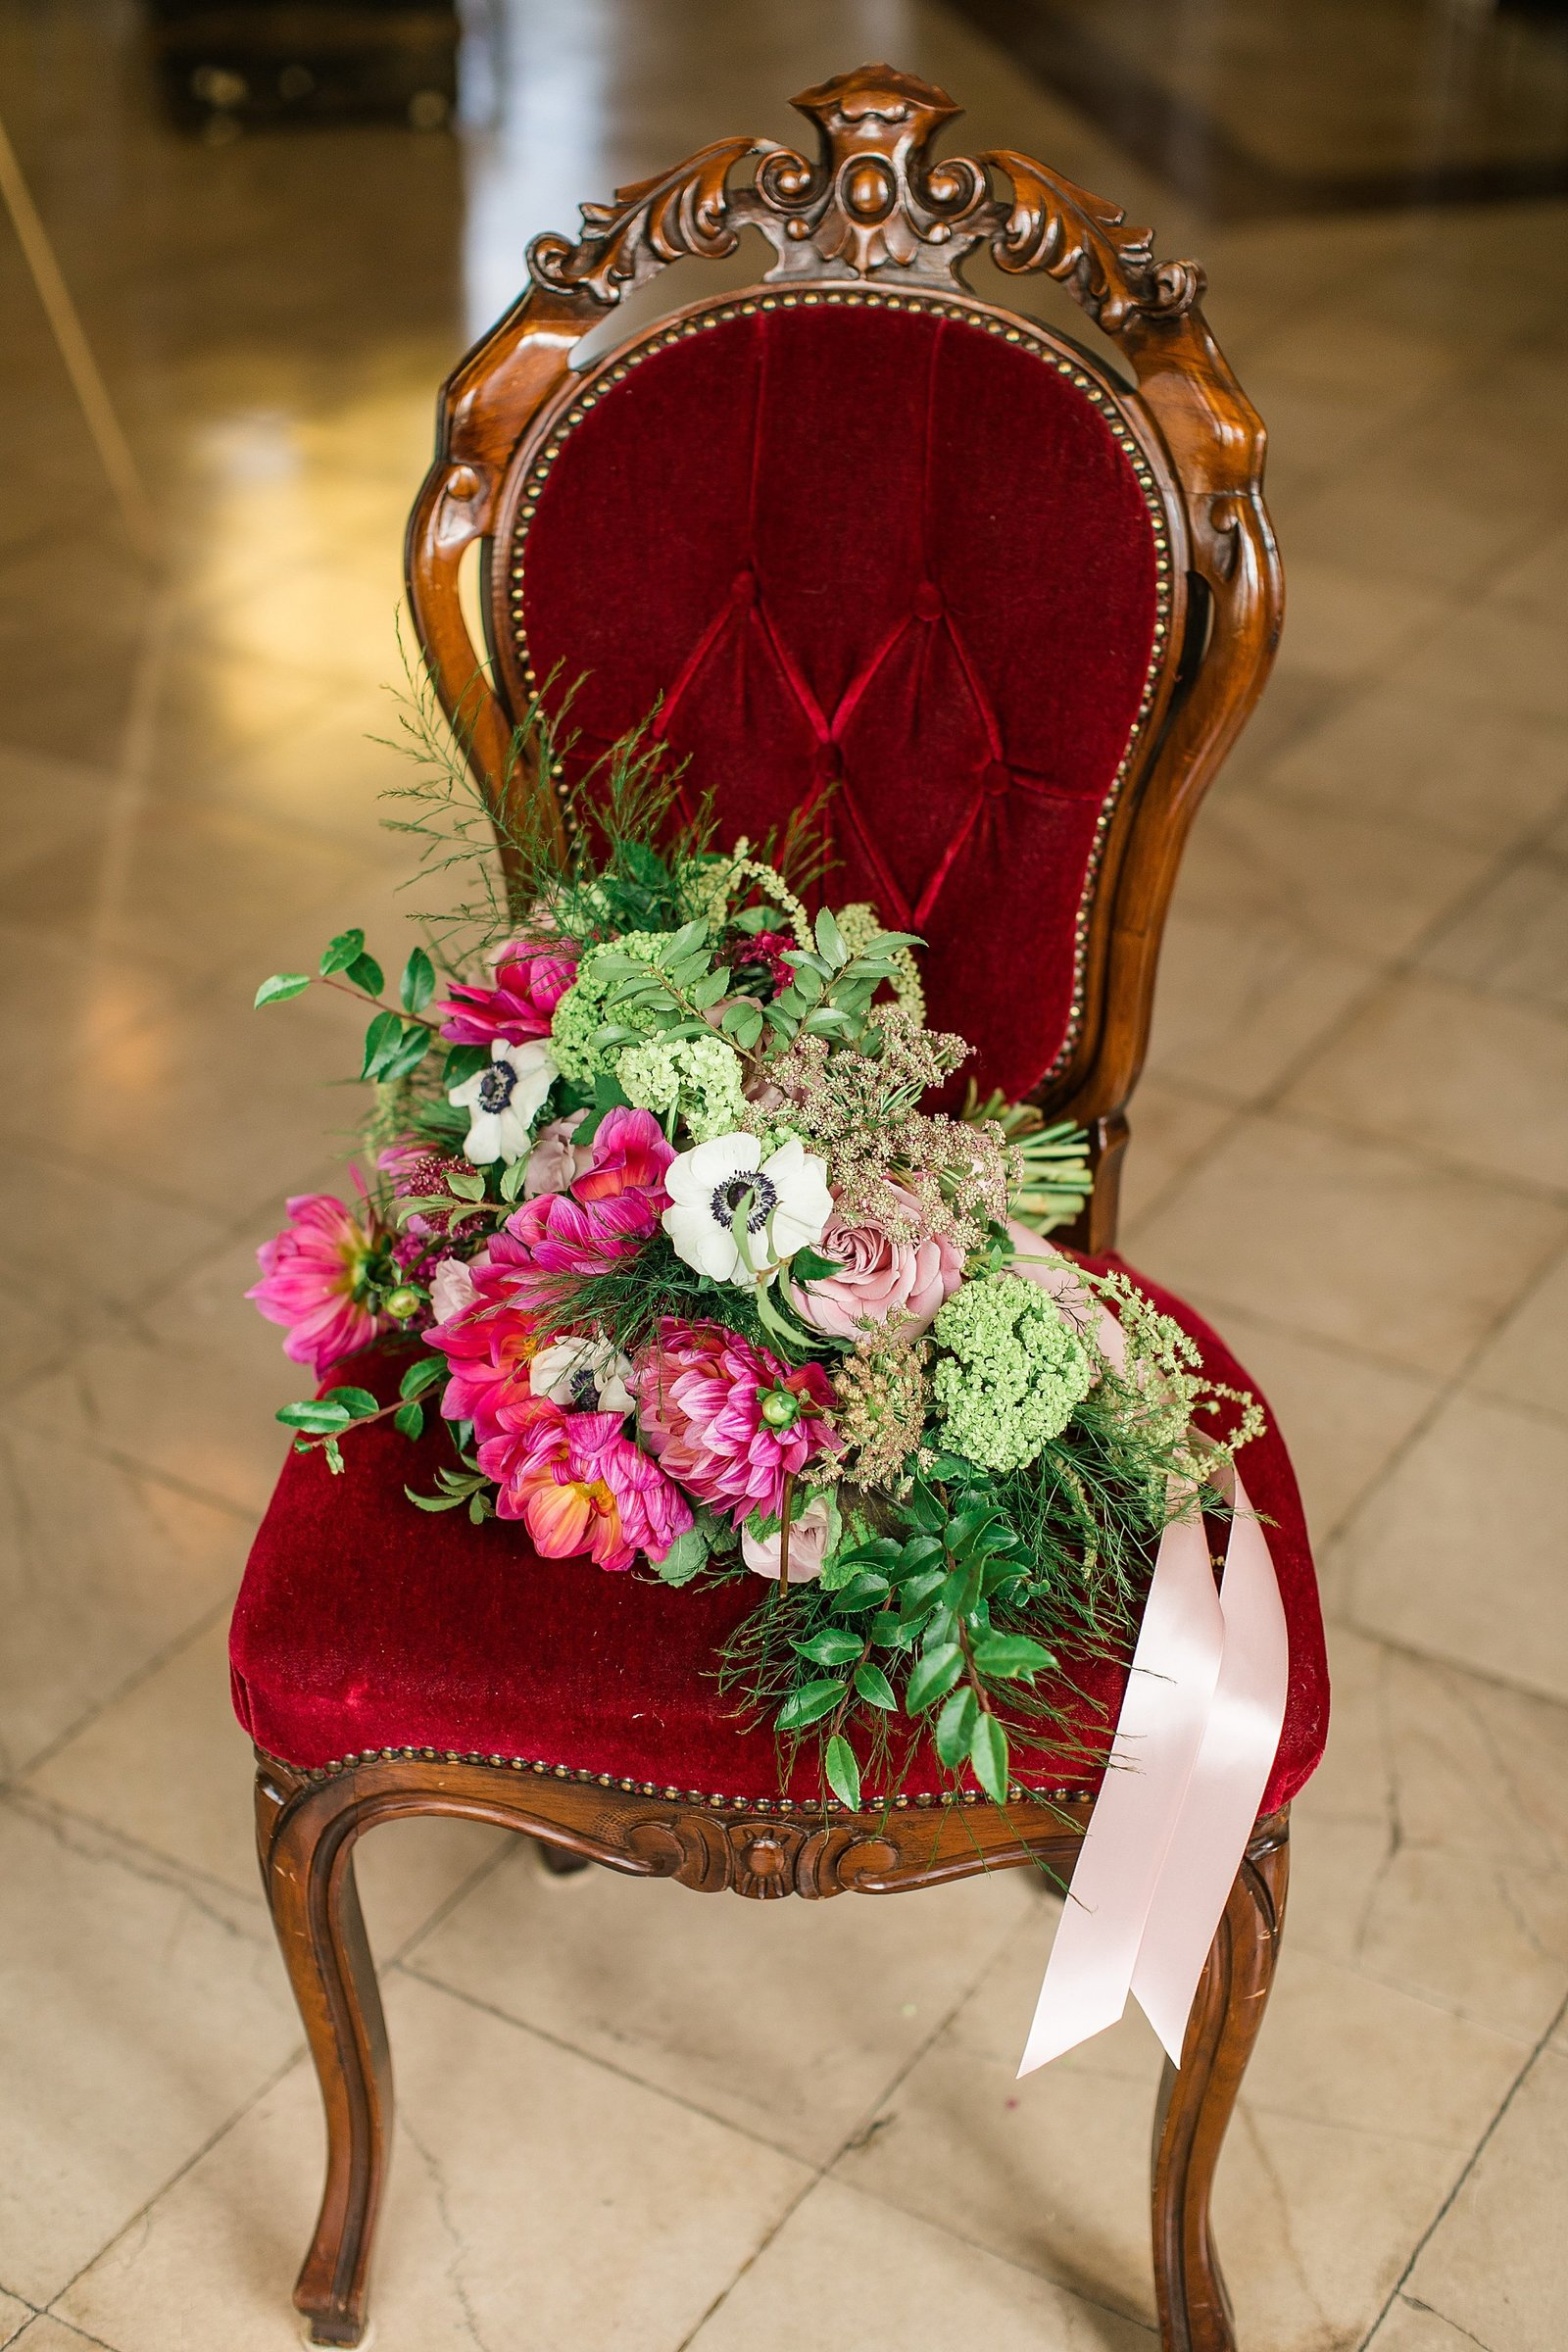 red-velvet-chair-bridal-bouquet-pink-satin